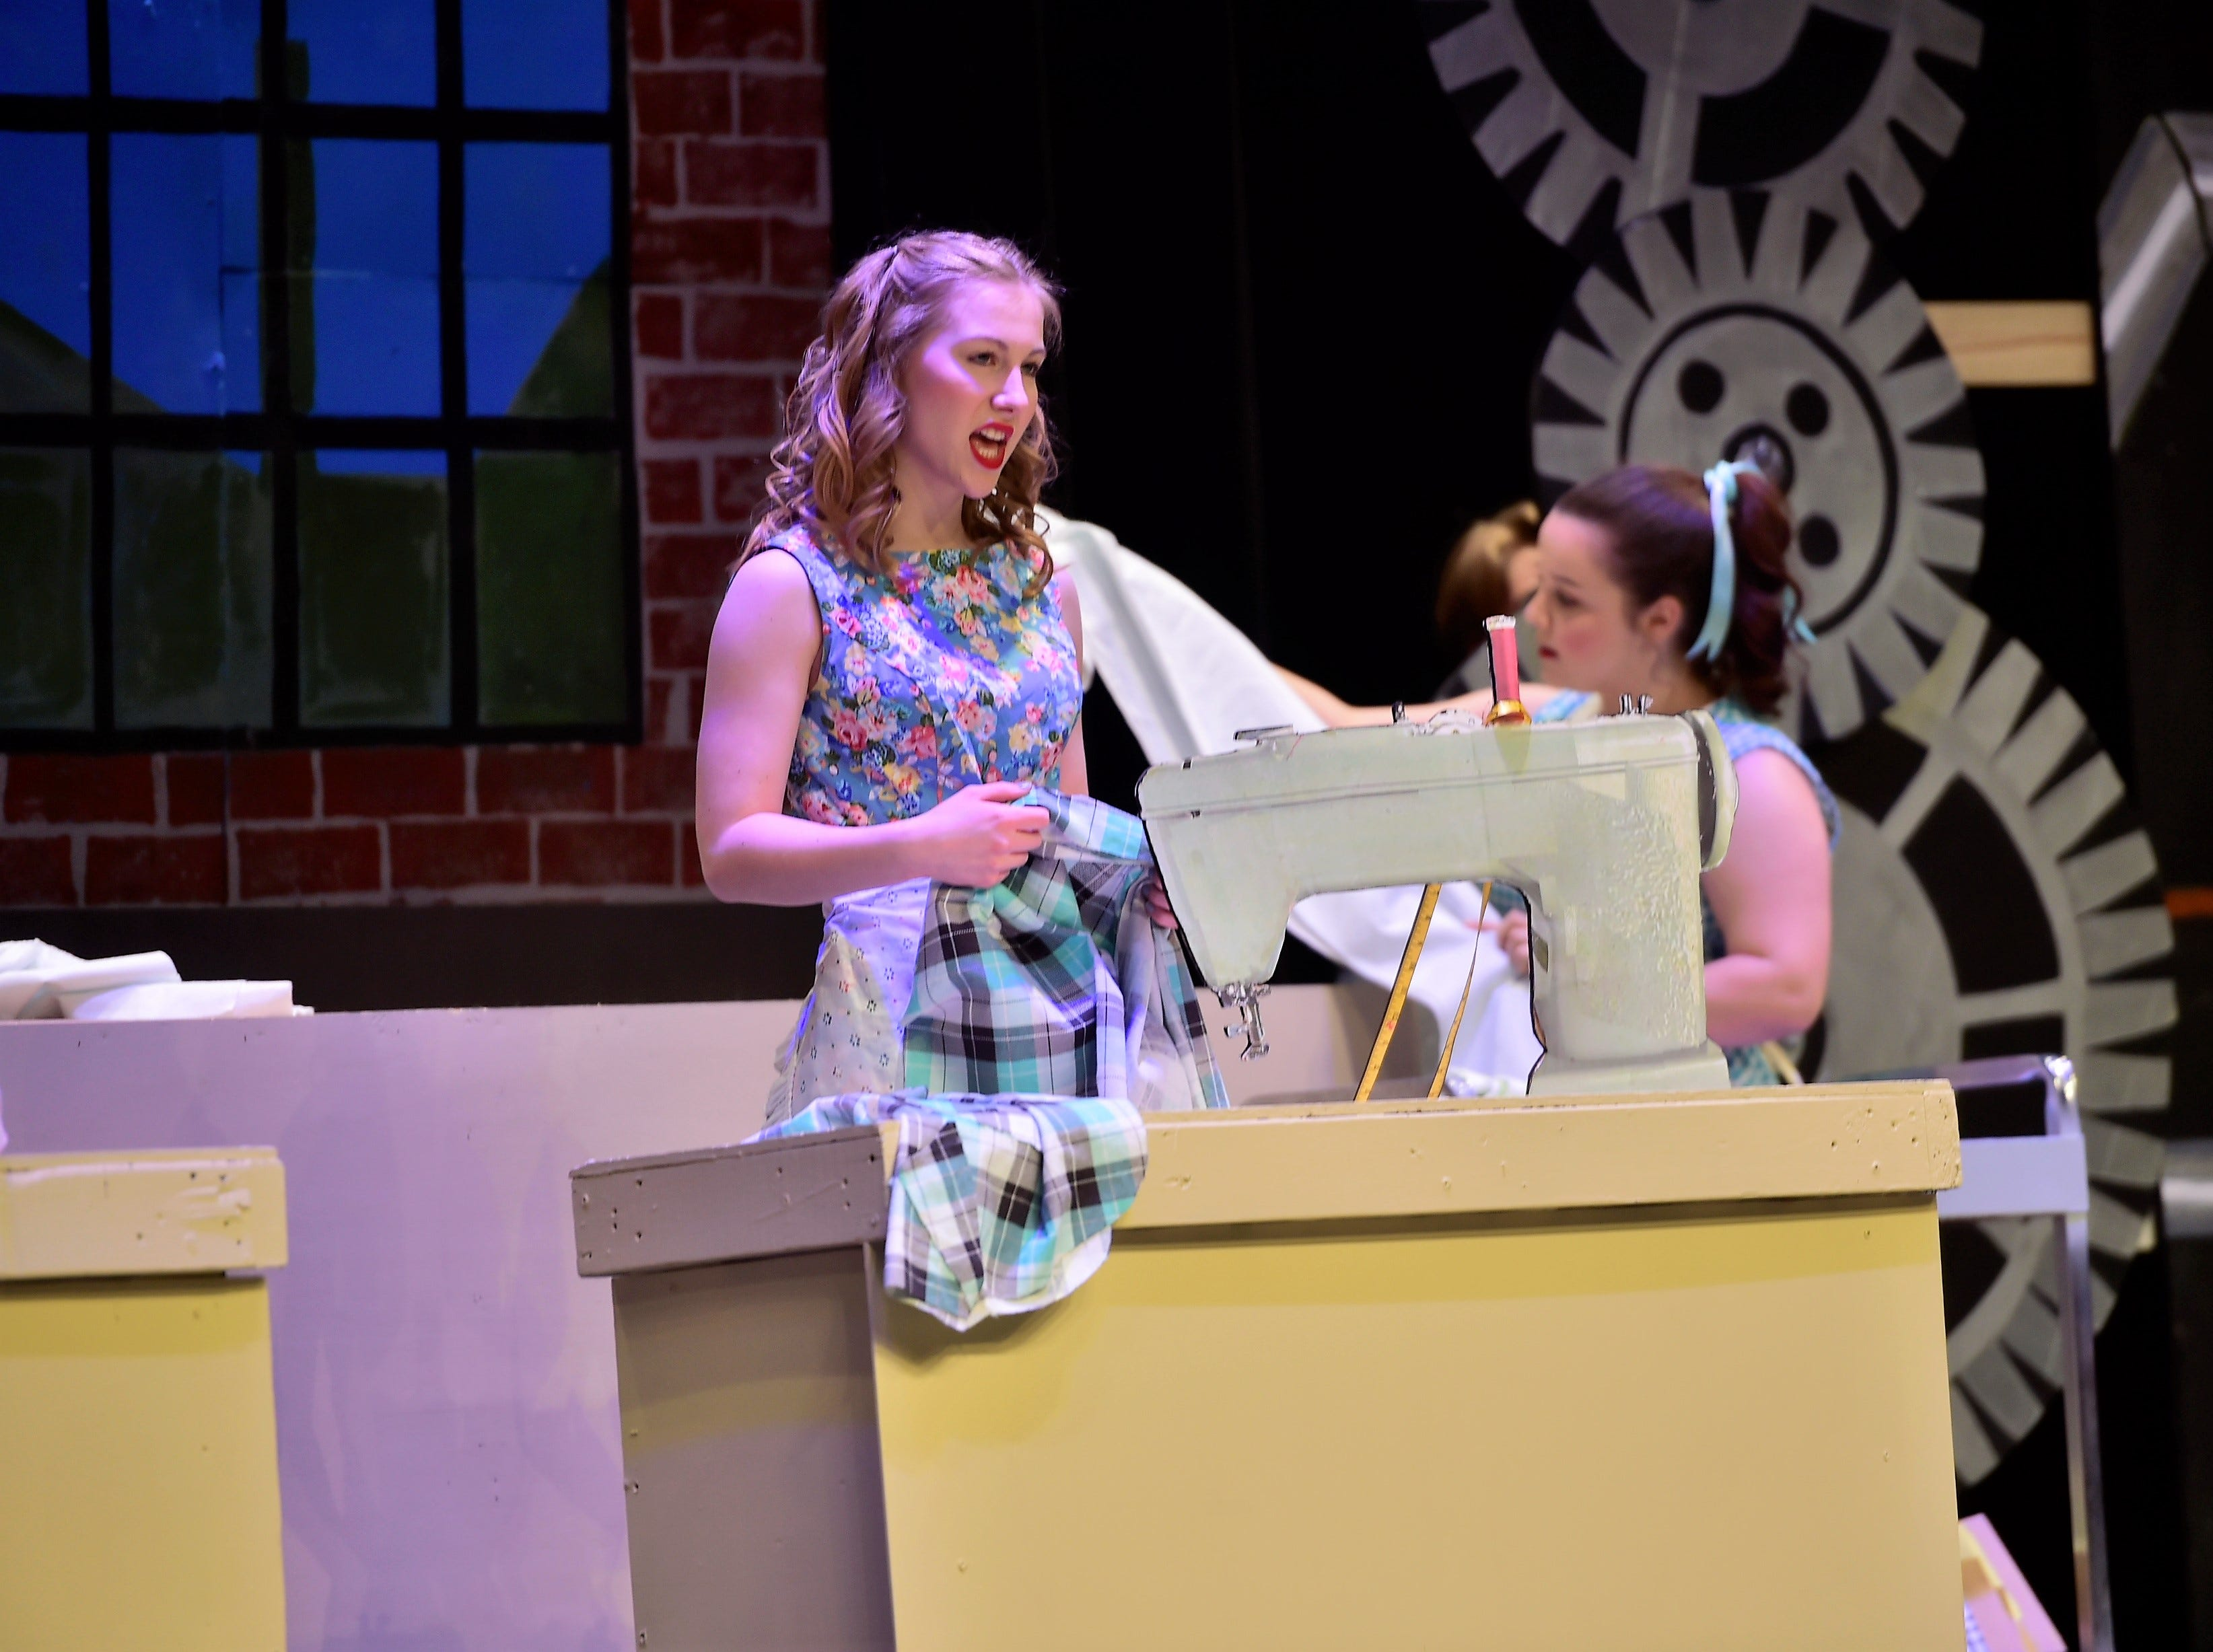 """Portraying workers in a pajama factory, two girls rehearse a scene  from """"The Pajama Game,"""" on Sunday, March 10, 2019, at Waynesboro Area Senior High School. The musical, based on the 1953 novel, """"7 1/2 Cents"""" by Richard Bissell, tells the story of a pajama factory where workers are fighting for a raise of 7 1/2 cents. Showtimes for Waynesboro Area School District's All-School Production of """"The Pajama Game"""" are 7 p.m. Friday and Saturday, March 15 and 16, and 2 p.m. Sunday, March 17 in the high school auditorium. For choose-your-seat tickets, $10 for adults and $6 for children under 12, go to https://washsmusic.ticketleap.com/the-pajama-game/. General admission tickets will also be sold at the door."""